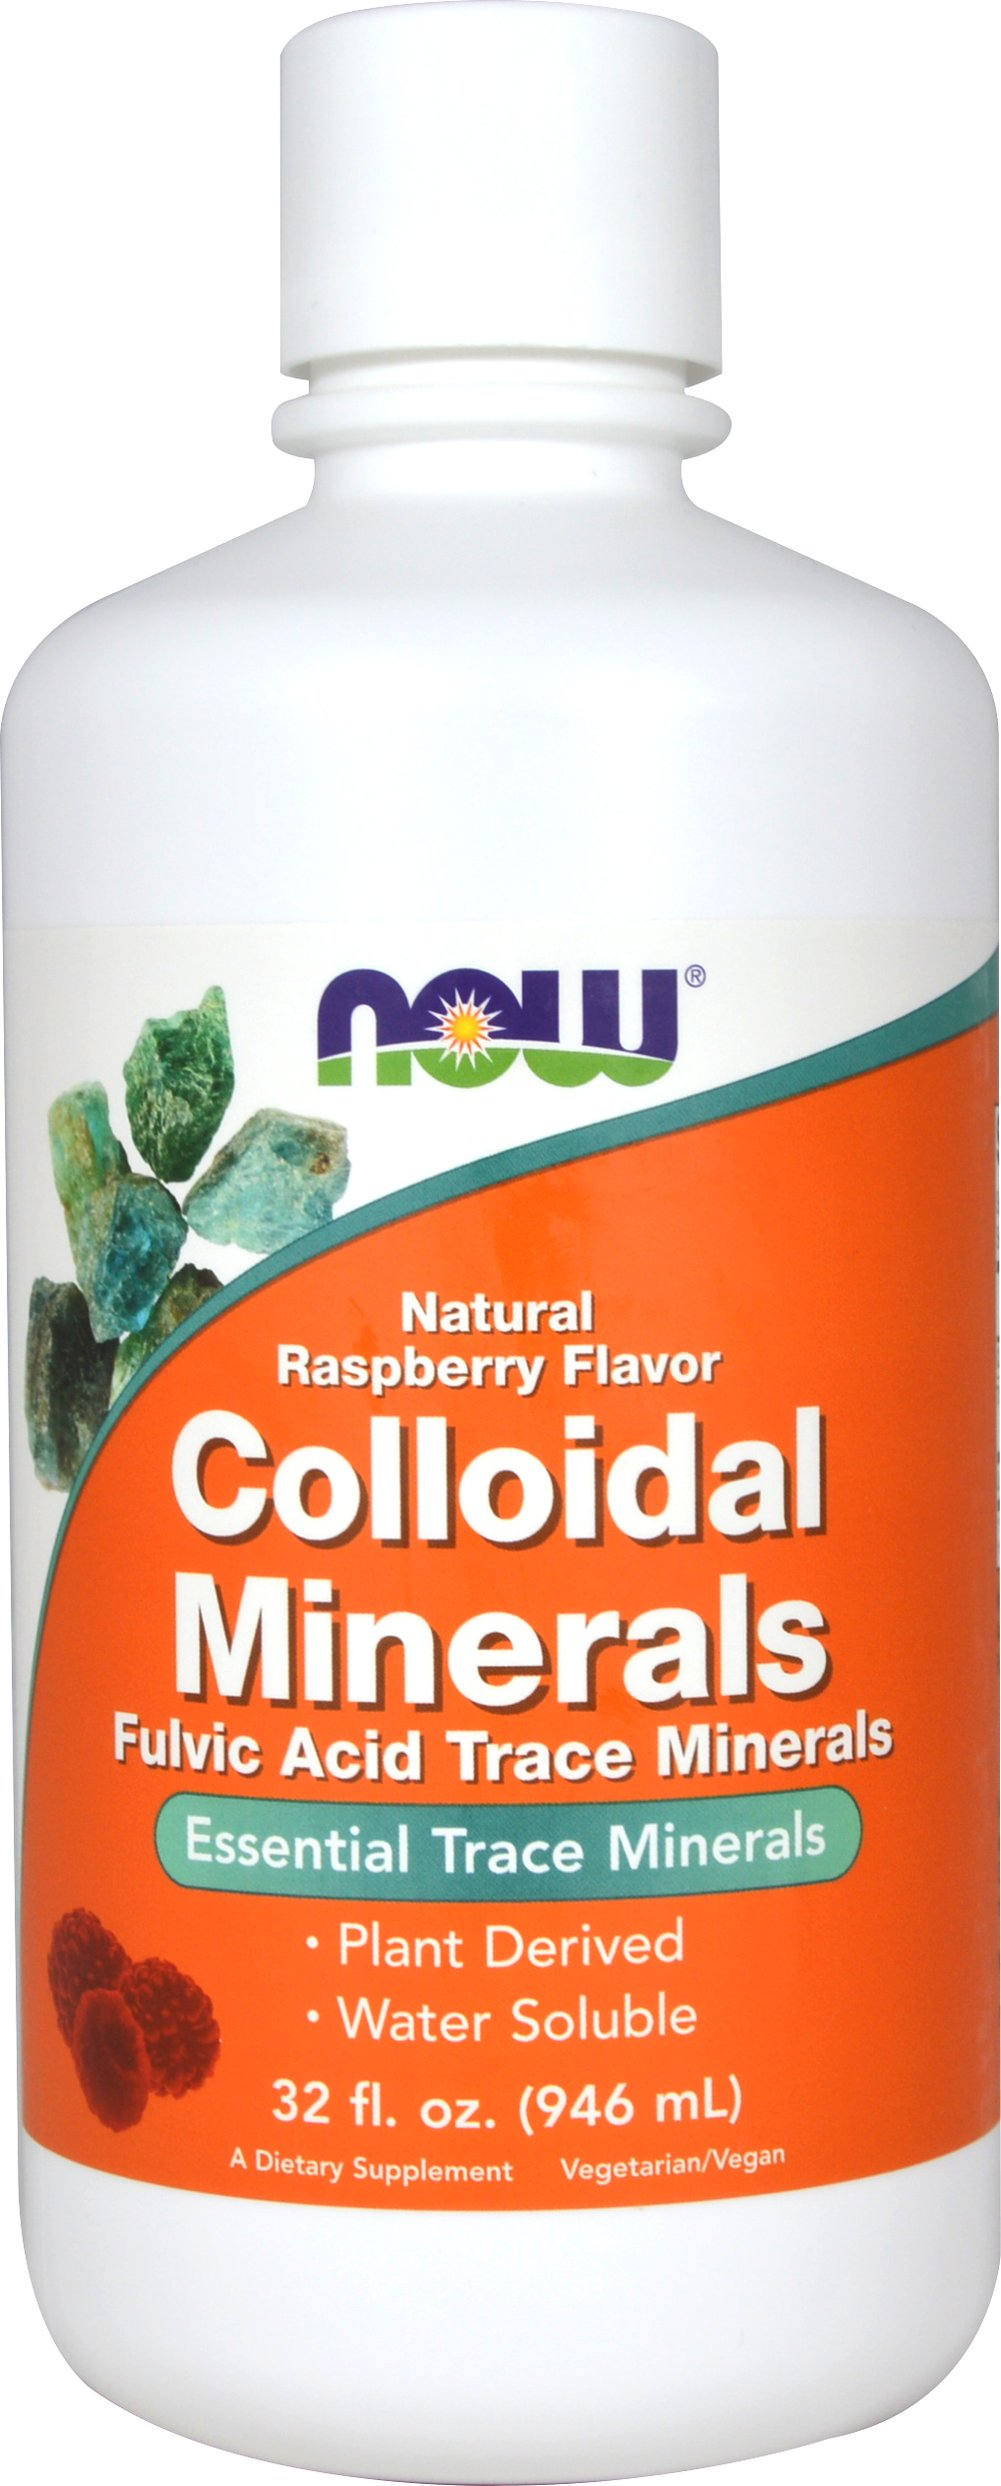 Colloidal Mineral Raspberry <p><strong>From the Manufacturer's Label:</strong></p><p>Essential Trace Minerals</p><p>Fulvic Acid Trace Minerals</p><p>- Plant Derived</p><p>-Water Soluble</p><p>NOW® Raspberry Flavored Colloidal Minerals is a pleasant tasting blend comprised of highly absorbable, water-soluble minerals derived from prehistoric plant deposits in Utah. Each 1 ounce serving has naturally occurring t